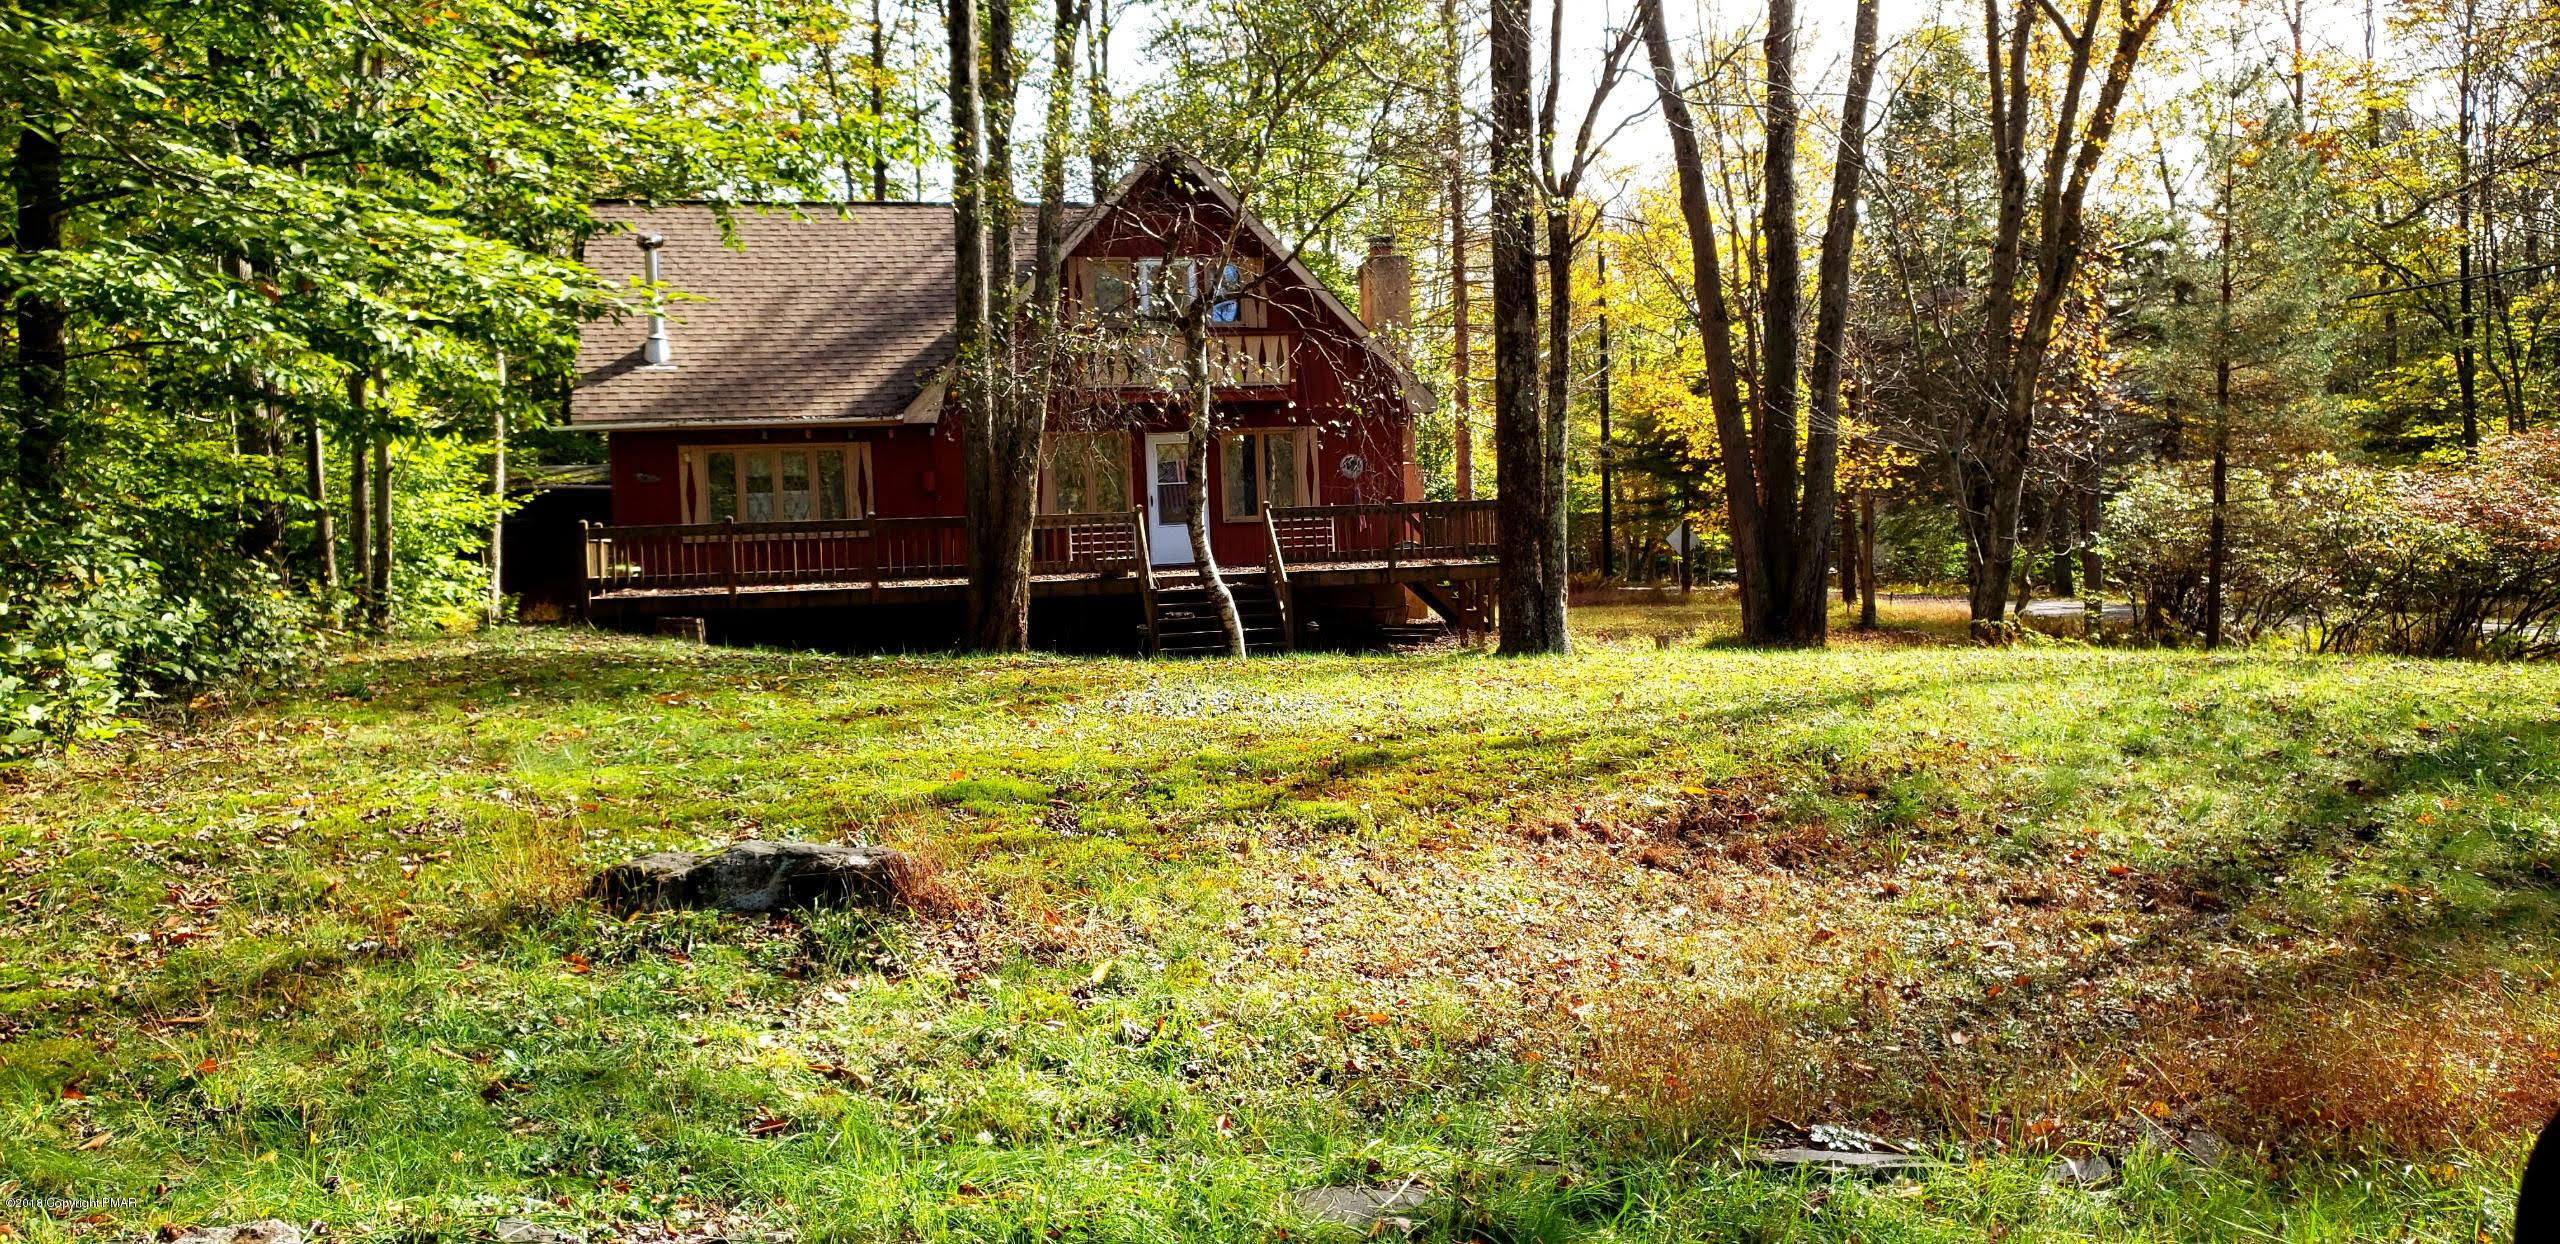 307 Outer Dr, Pocono Lake, PA 18347